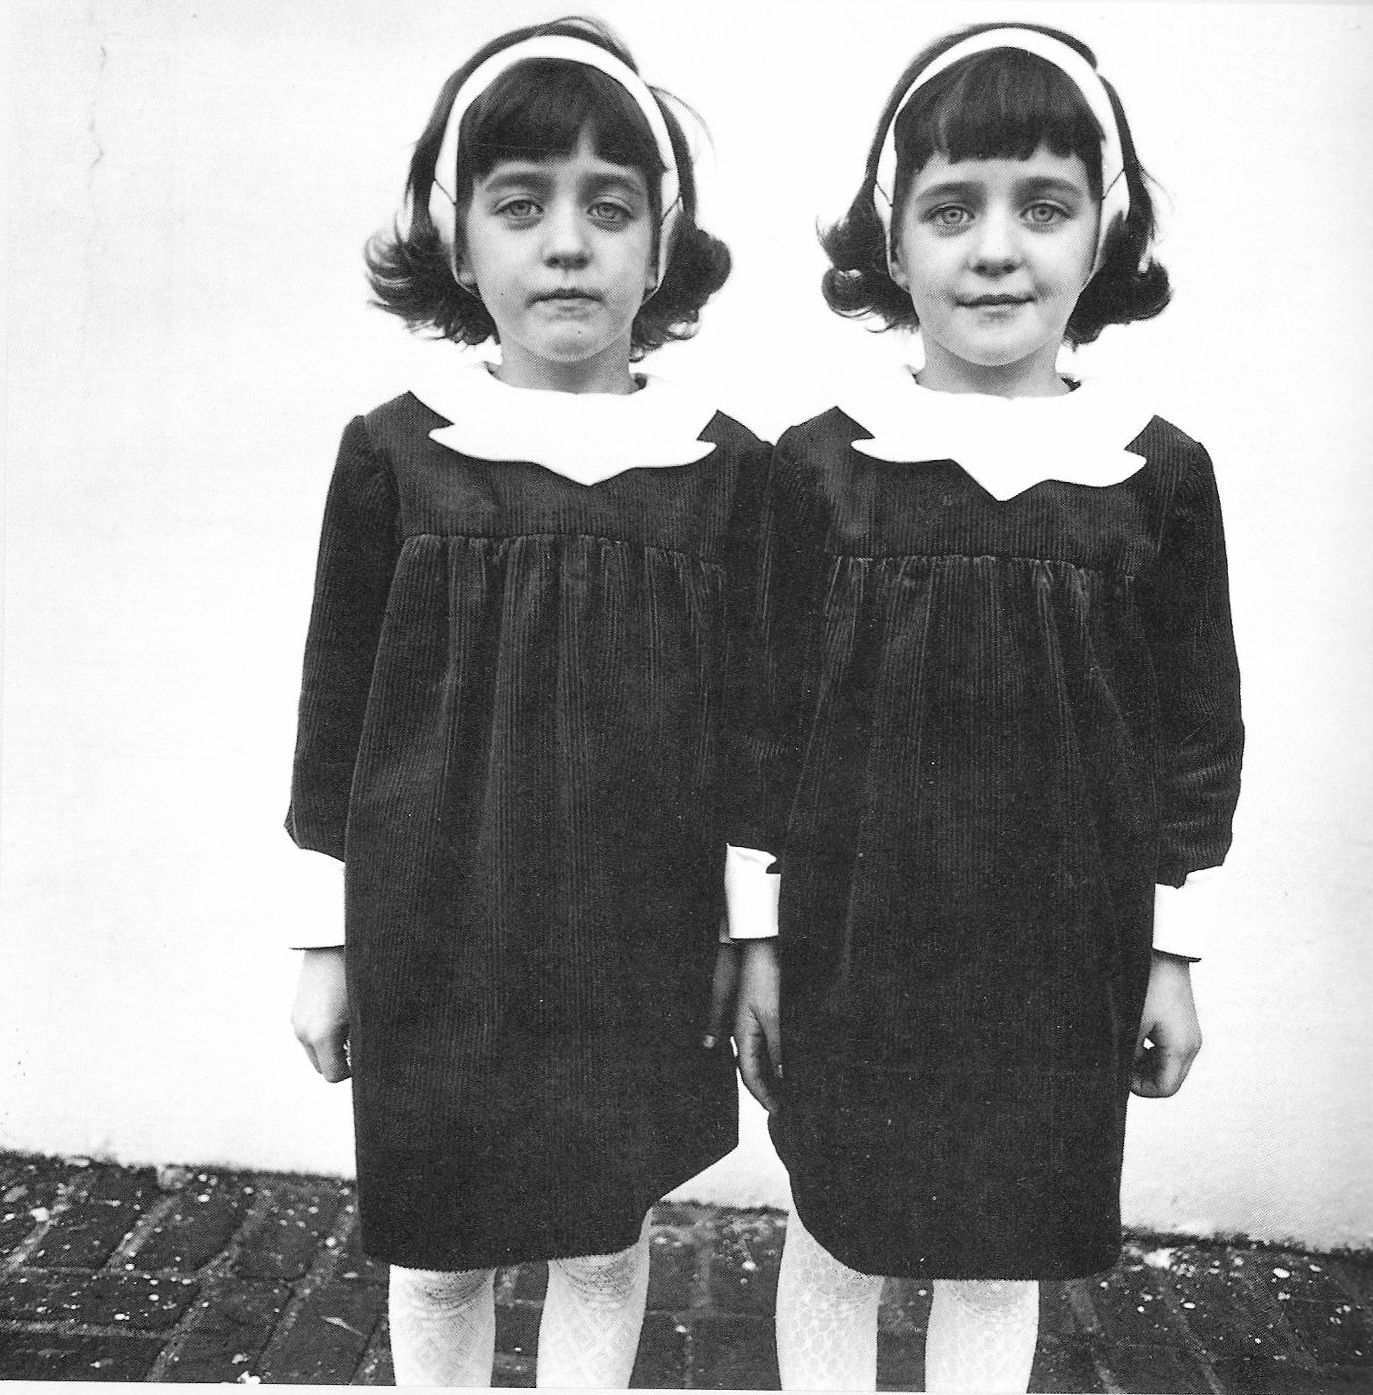 Identical twins 1967 by Diane Arbus